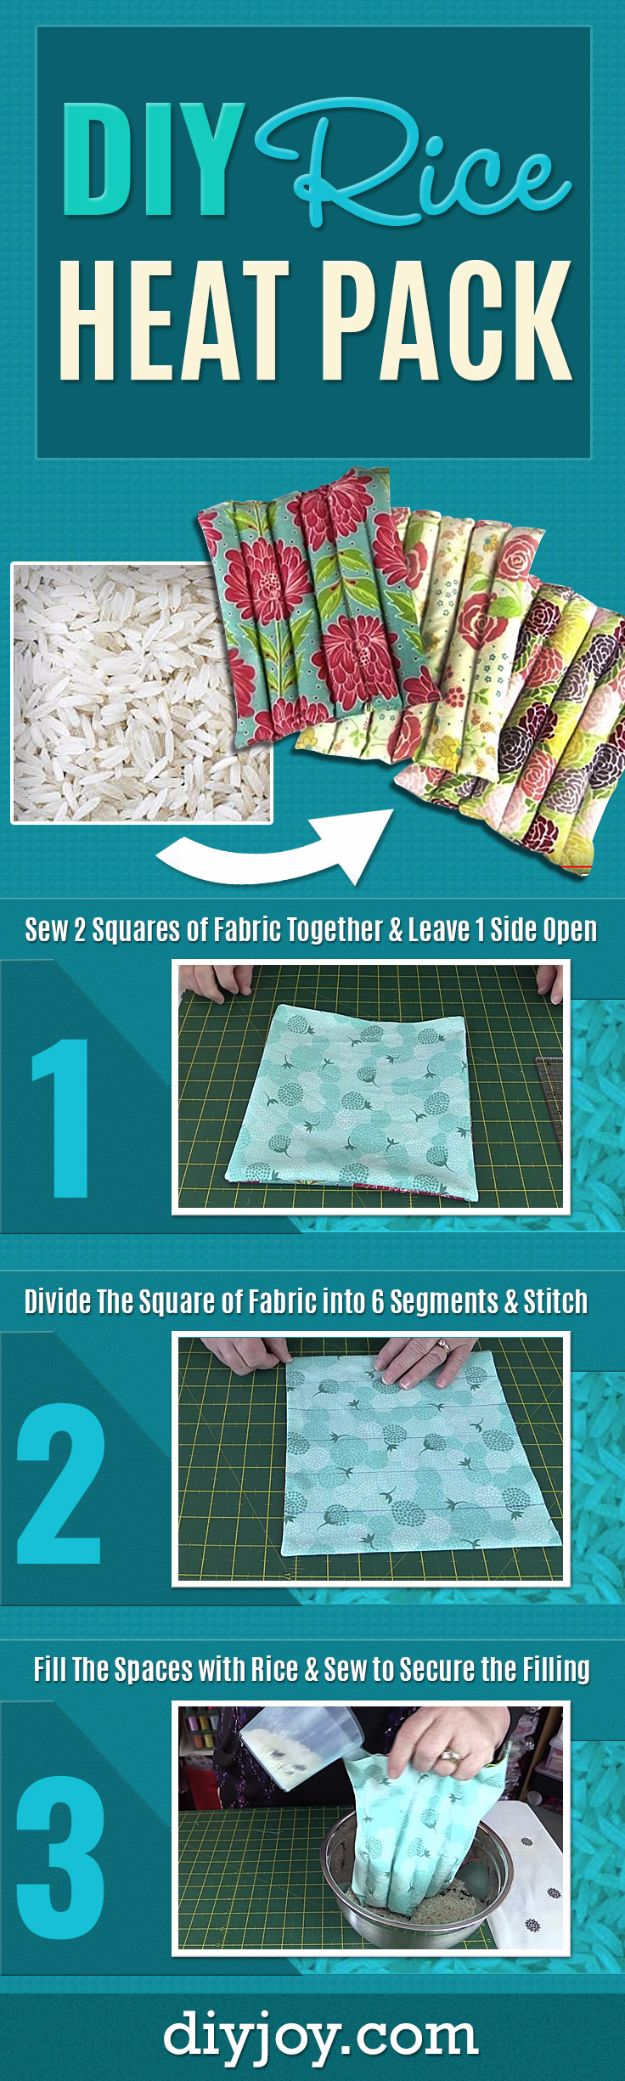 Cheap Crafts for Teens - DIY Rice Heat Pack - Inexpensive DIY Projects for Teenagers and Tweens - Cute Room Decor, School Supplies, Accessories and Clothing You Can Make On A Budget - Fun Dollar Store Crafts - Cool DIY Gift Ideas for Christmas, Birthdays, BFF gifts and more - Step by Step Tutorials and Instructions http://diyprojectsforteens.com/cheap-craft-ideas-for-teens/